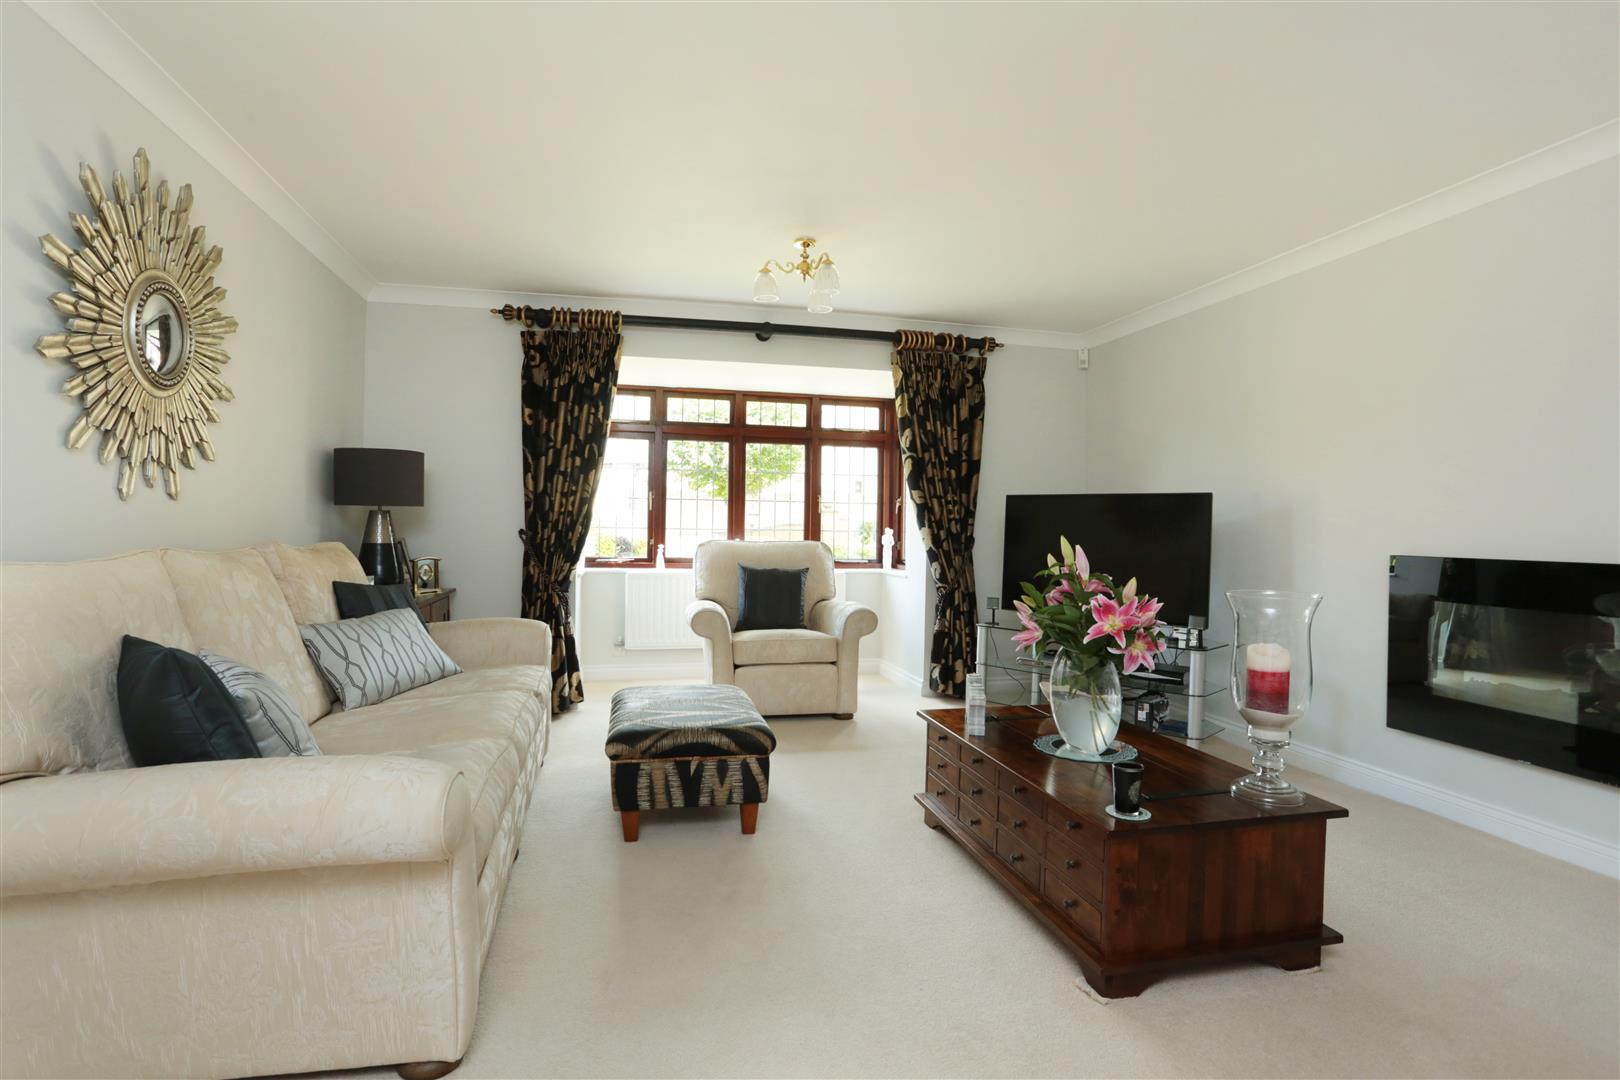 5 Bedrooms Detached House for sale in Chevalier Close, Middleleaze, Swindon